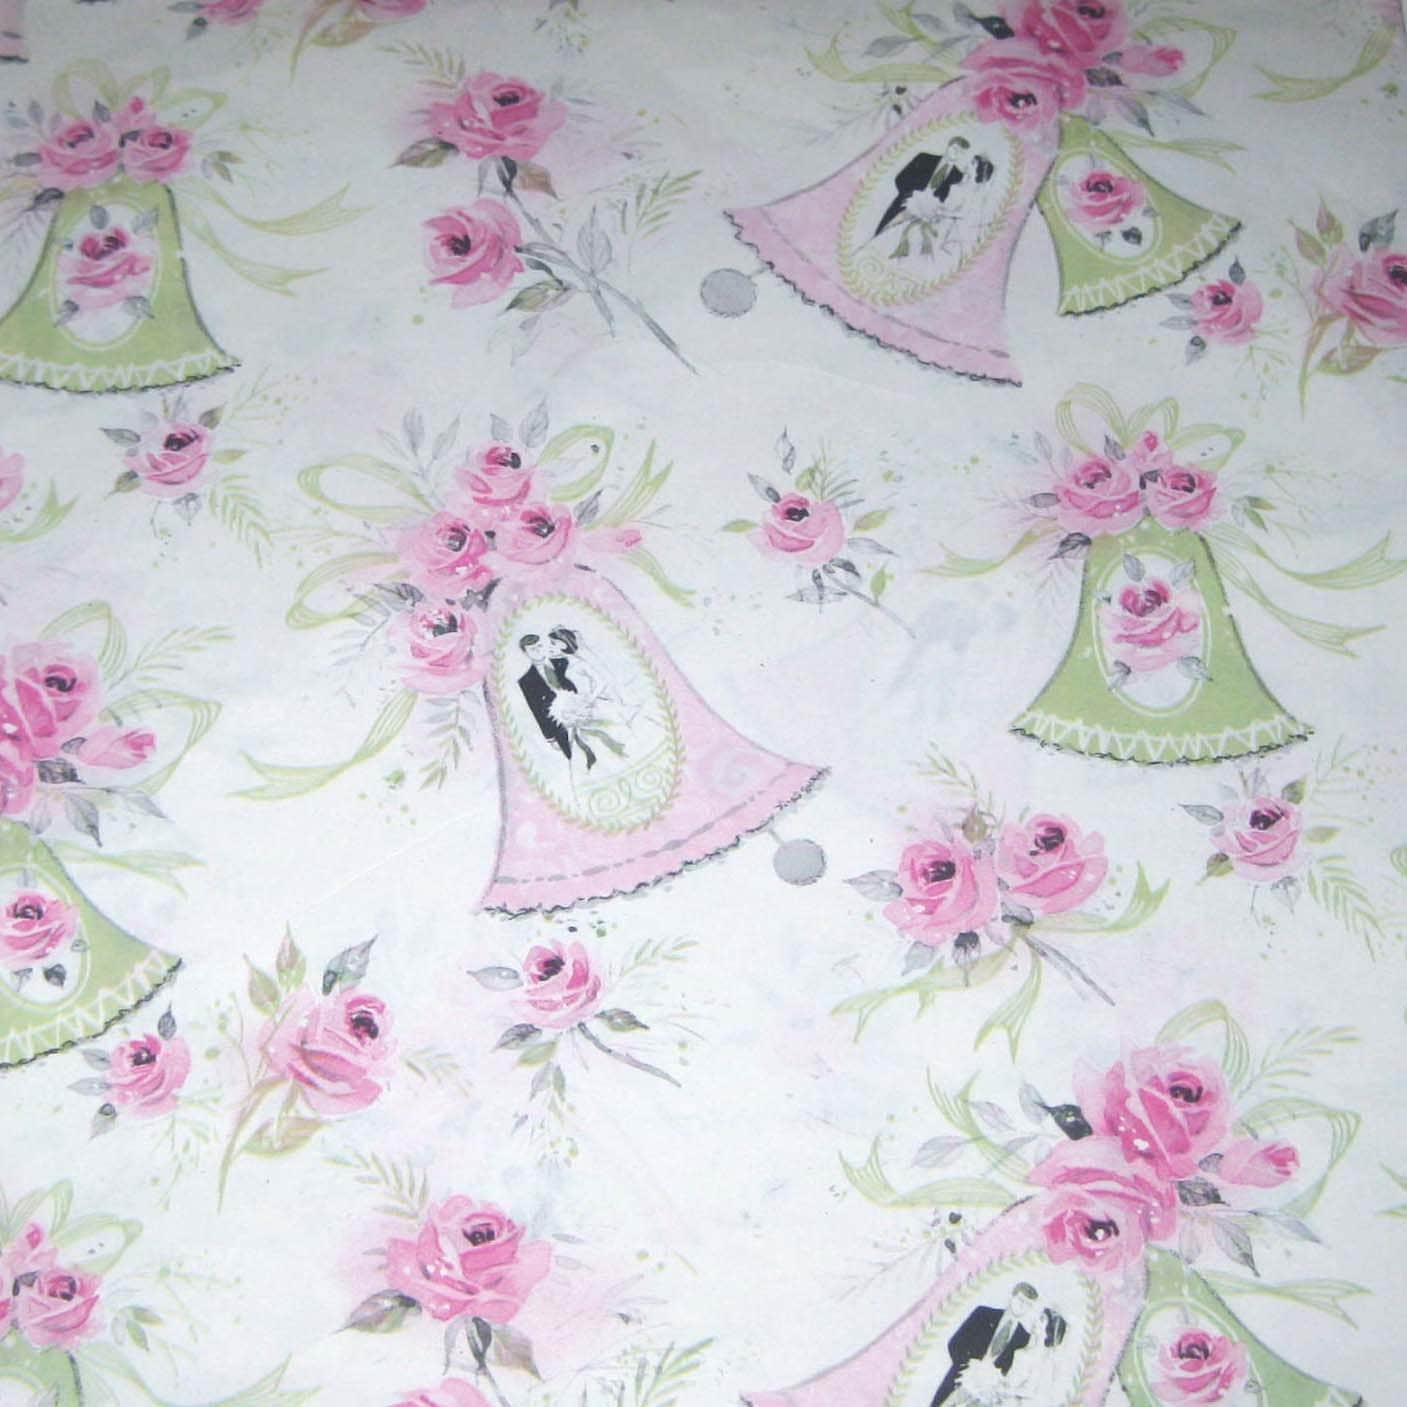 Wedding Gift Paper: Vintage Wedding Wrapping Paper Or Gift Wrap With Bride And